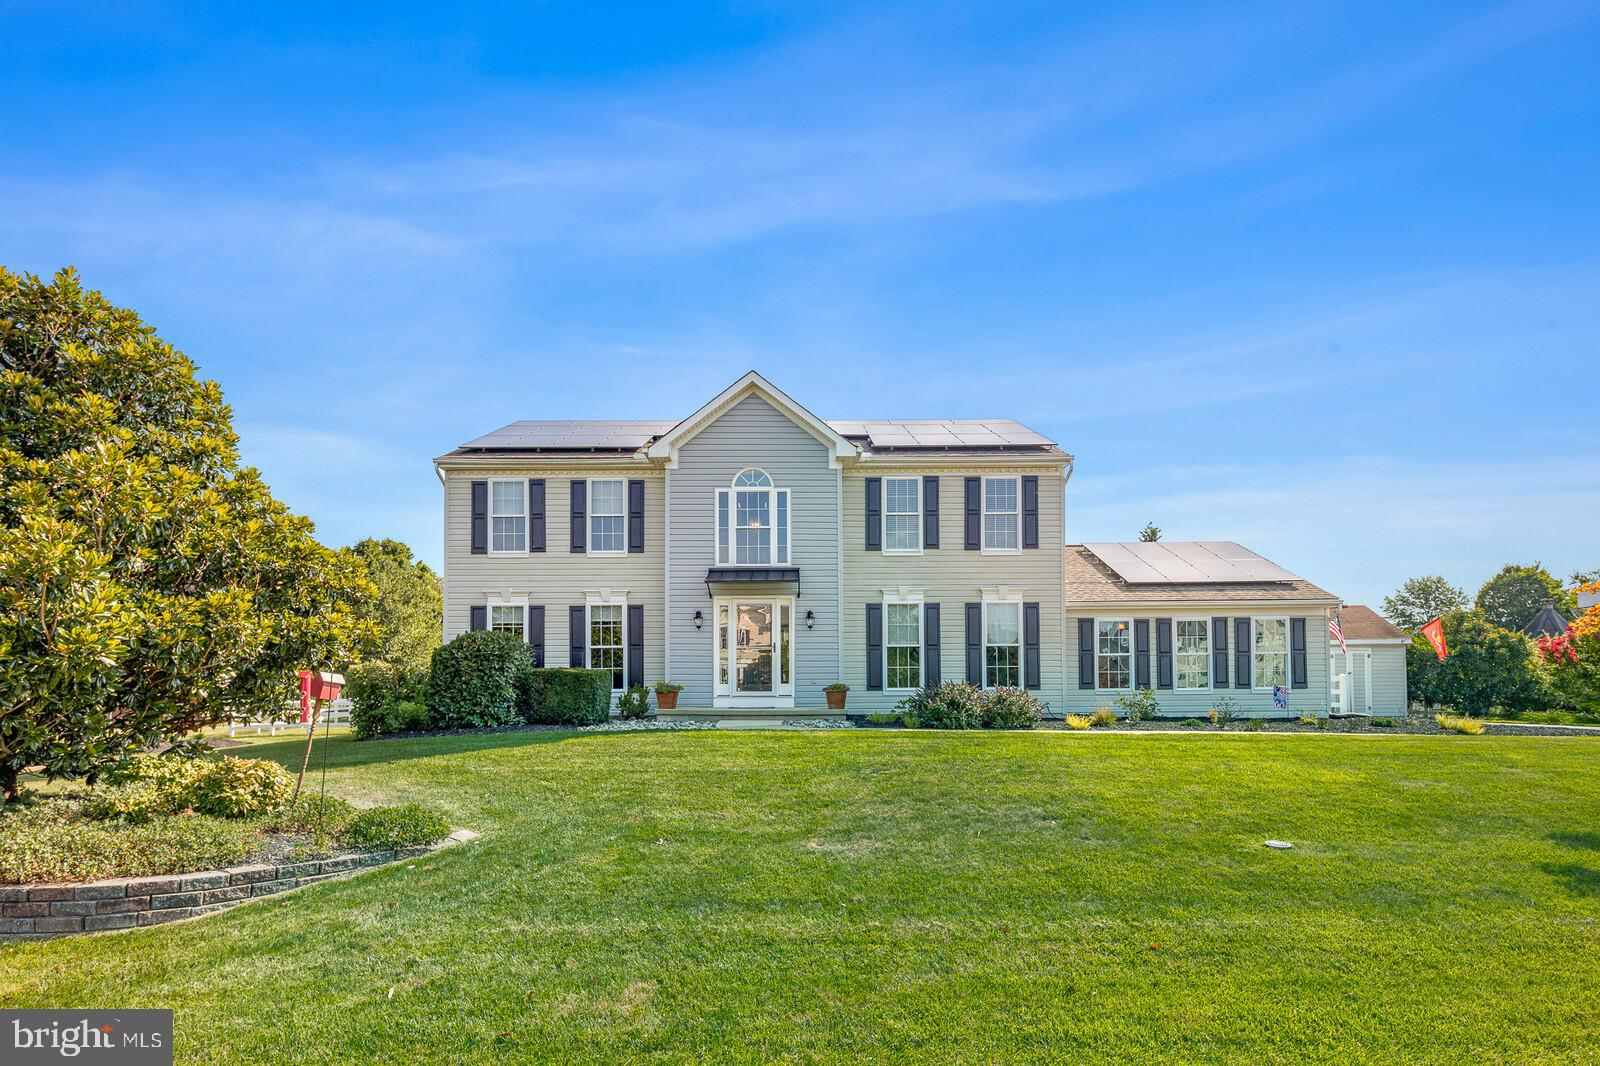 Showings start 7/26/21. Professional photos will be uploaded. This beautiful home sits on .53 acres.